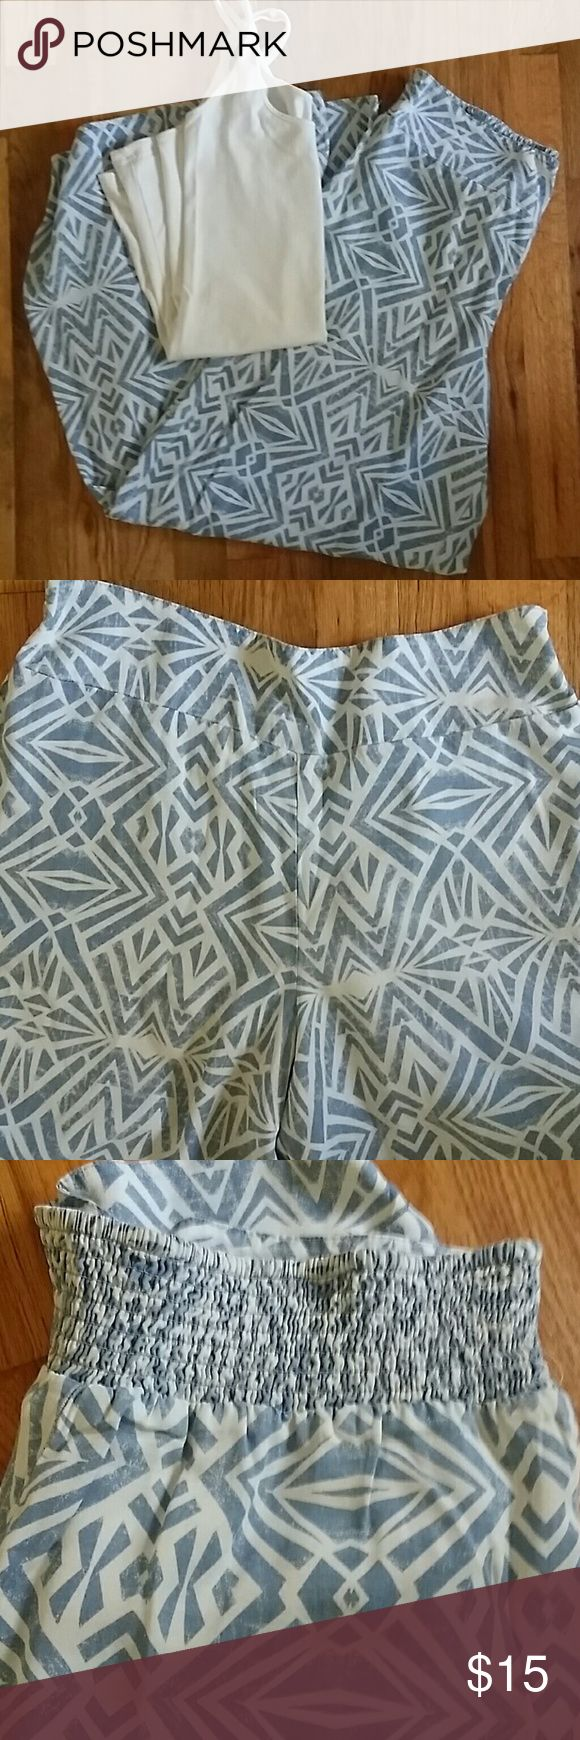 Comfy Aztec pants Super comfy fashion pants with Aztec print, only worn once Mossimo Supply Co Pants Wide Leg